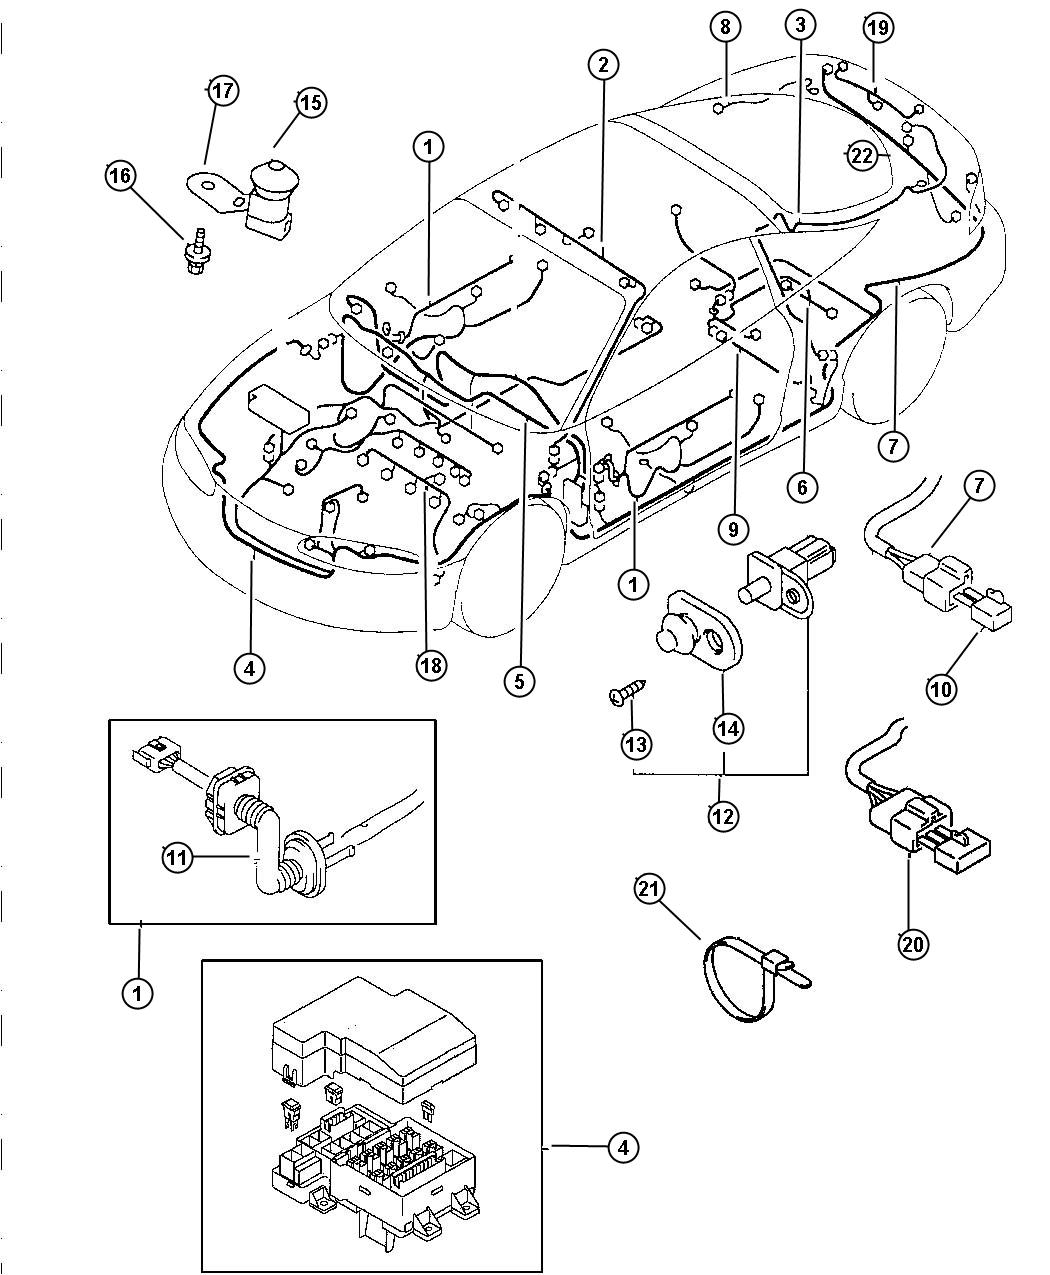 Diagram  2002 Chrysler Sebring Convertible Wiring Diagram